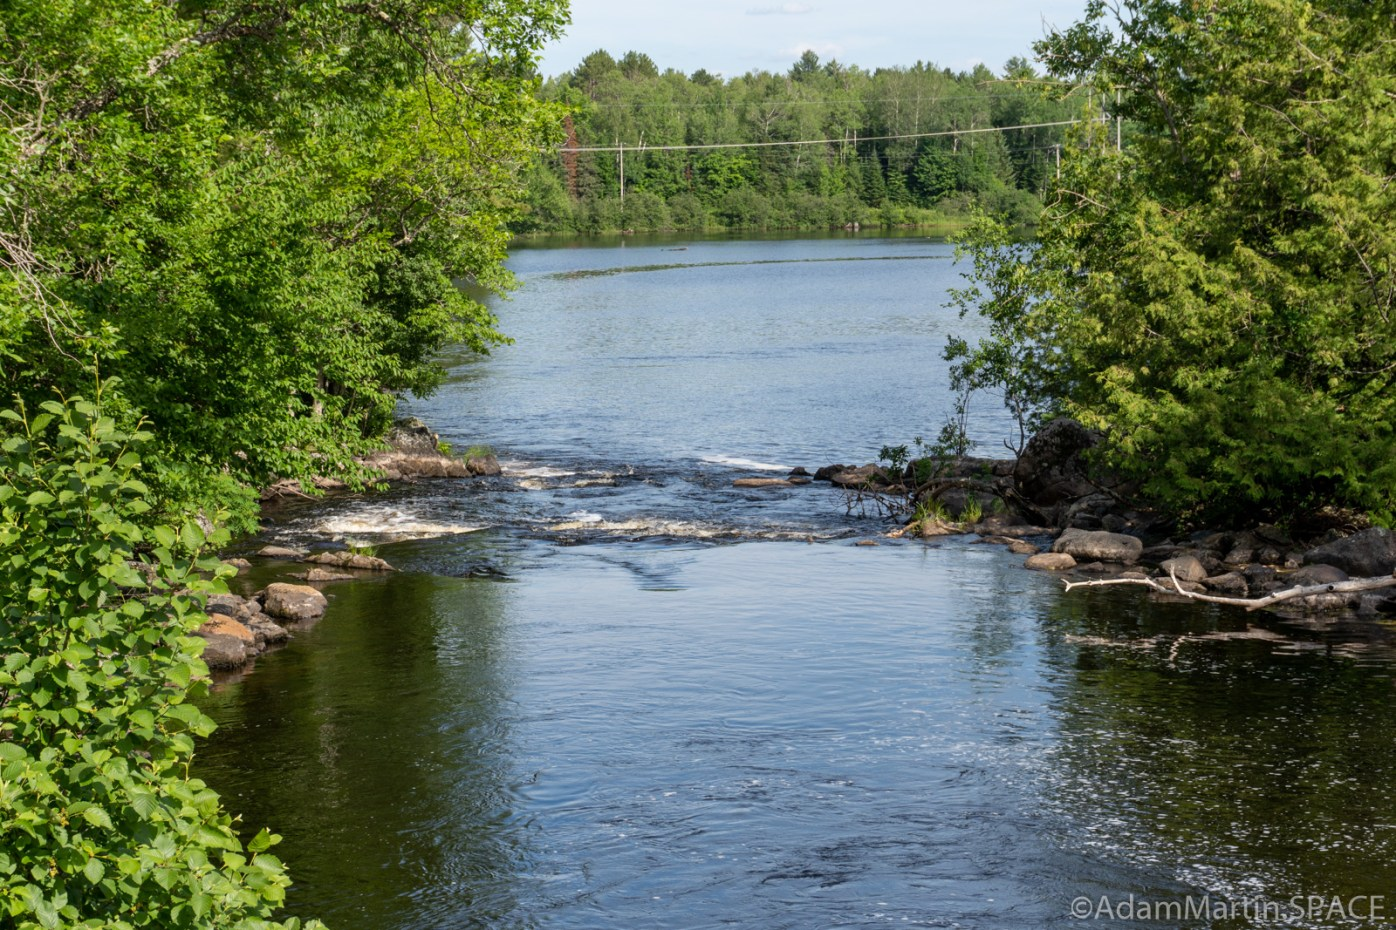 Lake of the Falls - Looking downstream from bridge